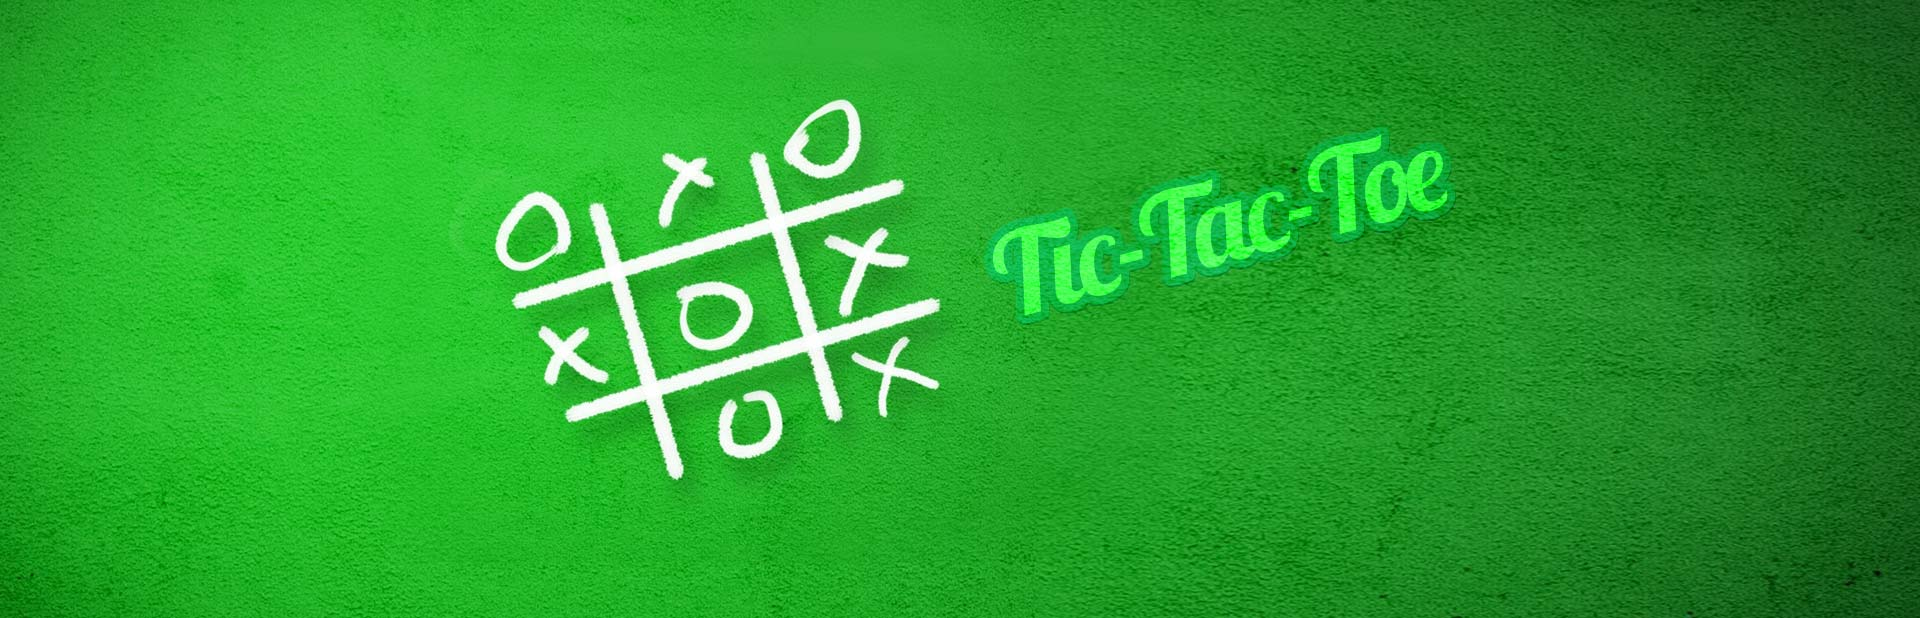 Tic Tac Game Development